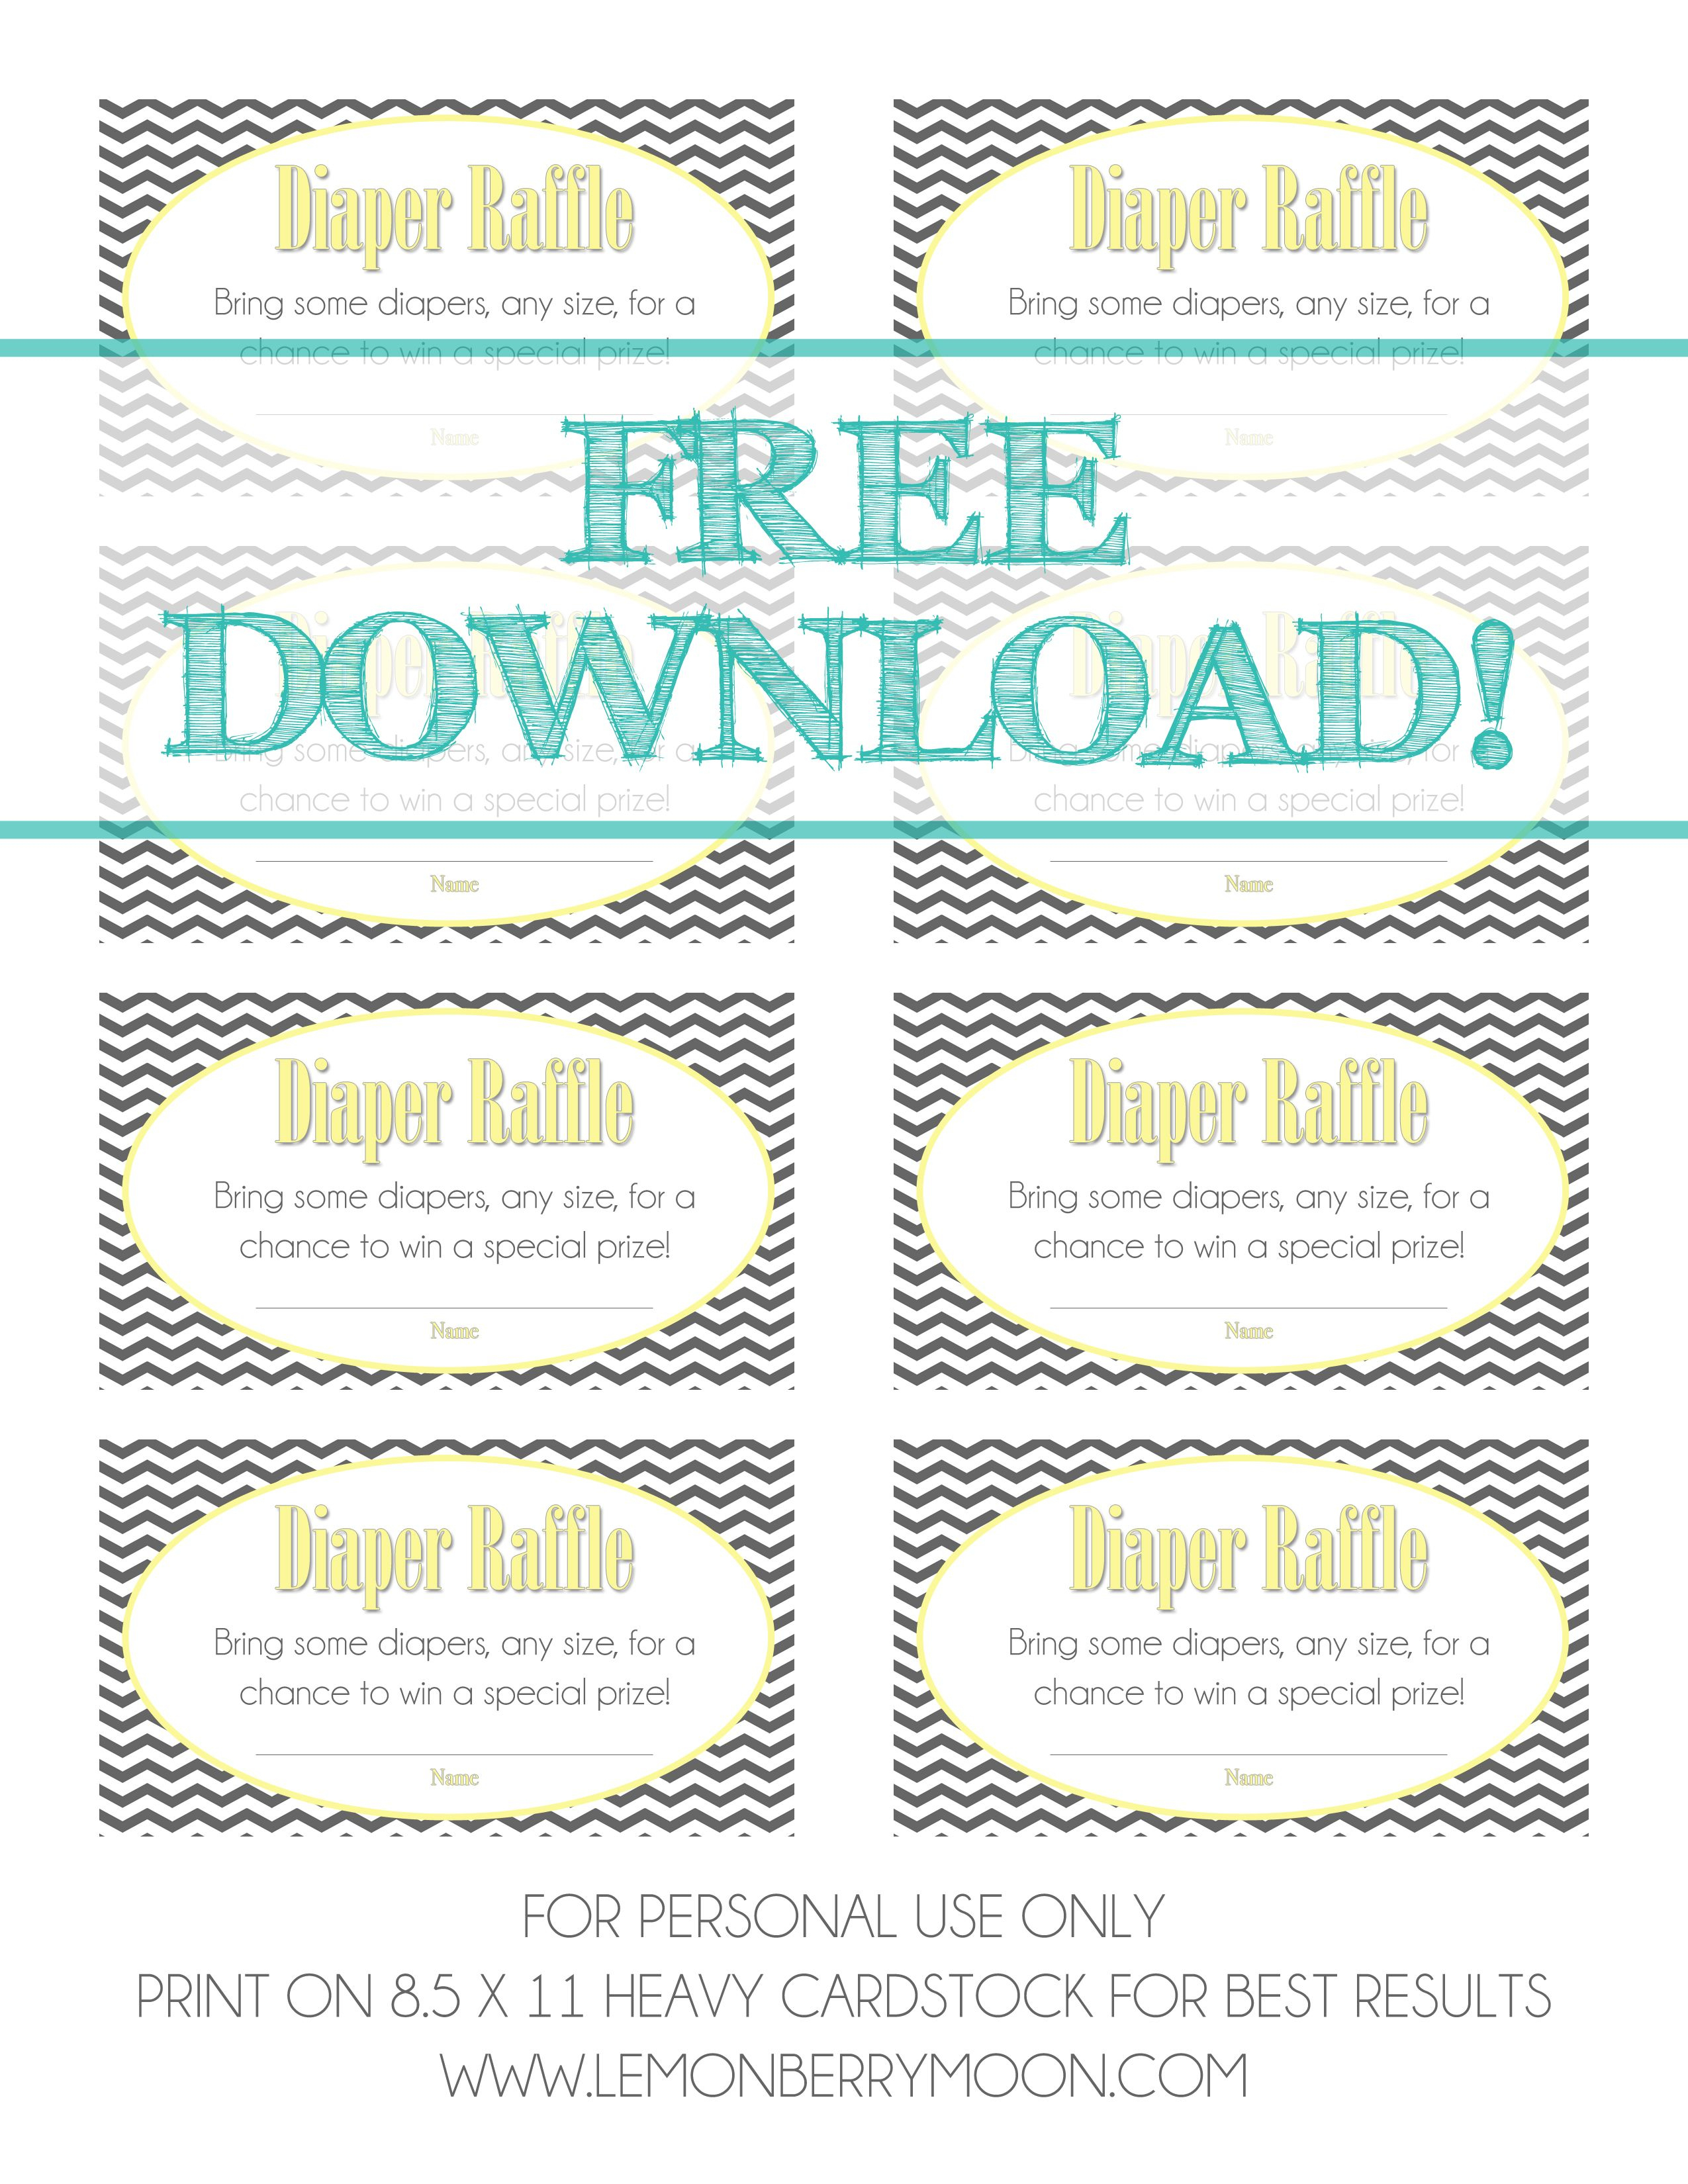 Free Download - Baby Diaper Raffle Template | Baaby Shower | Baby - Free Printable Diaper Raffle Ticket Template